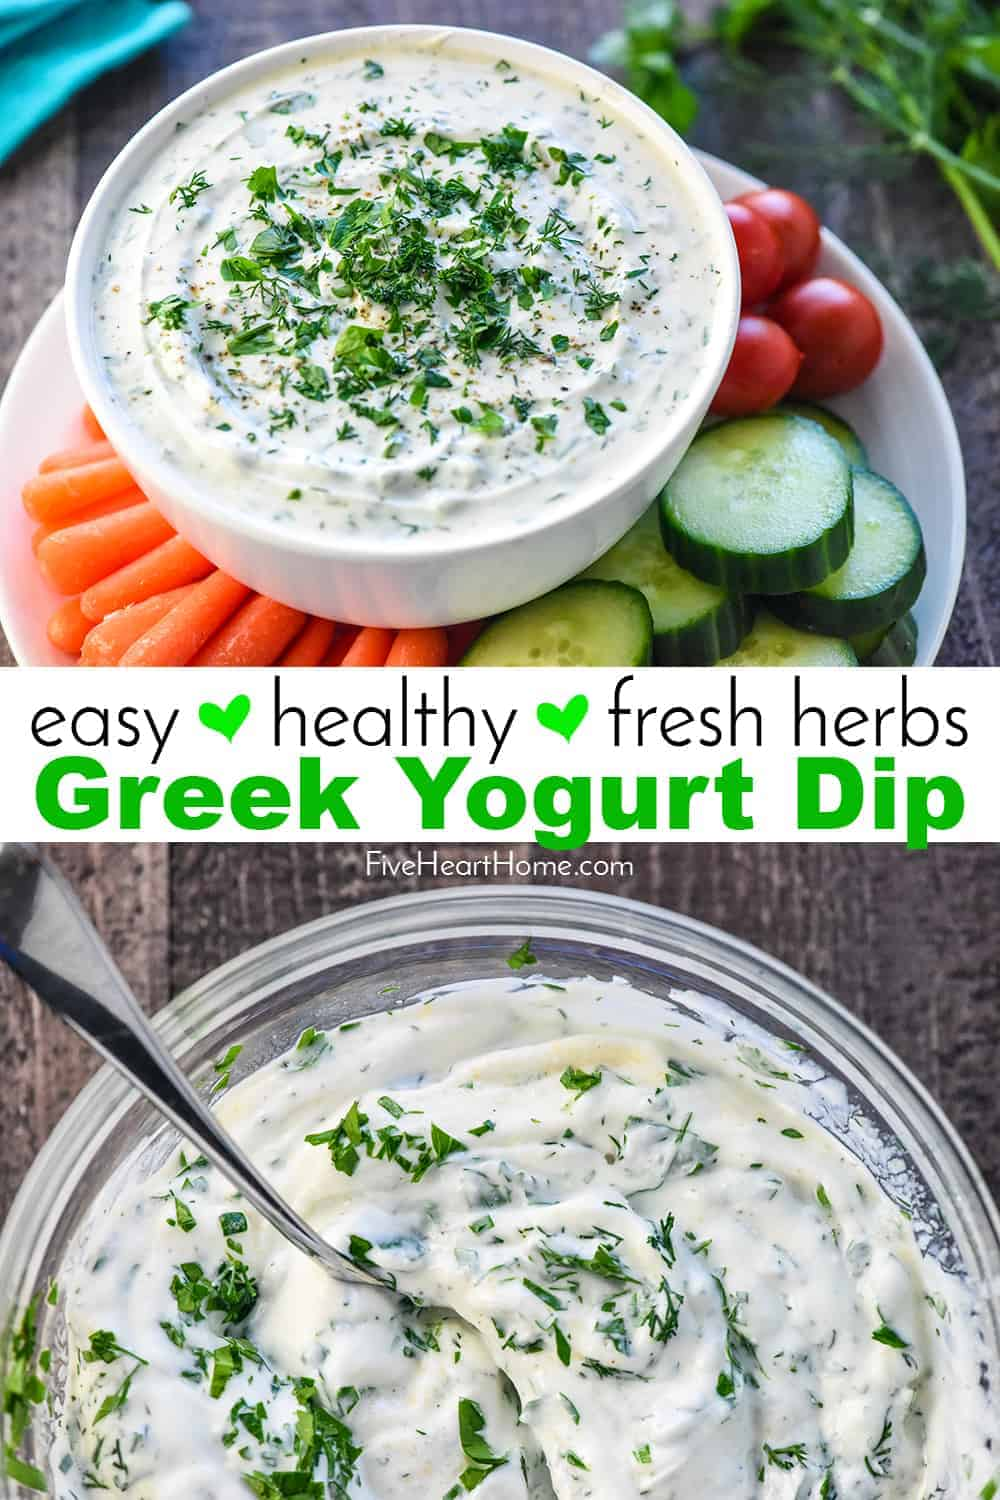 Greek Yogurt Dip ~ an all-natural, creamy, flavorful dip loaded with non-fat Greek yogurt and fresh herbs for a healthy way to enjoy fresh veggies! | FiveHeartHome.com